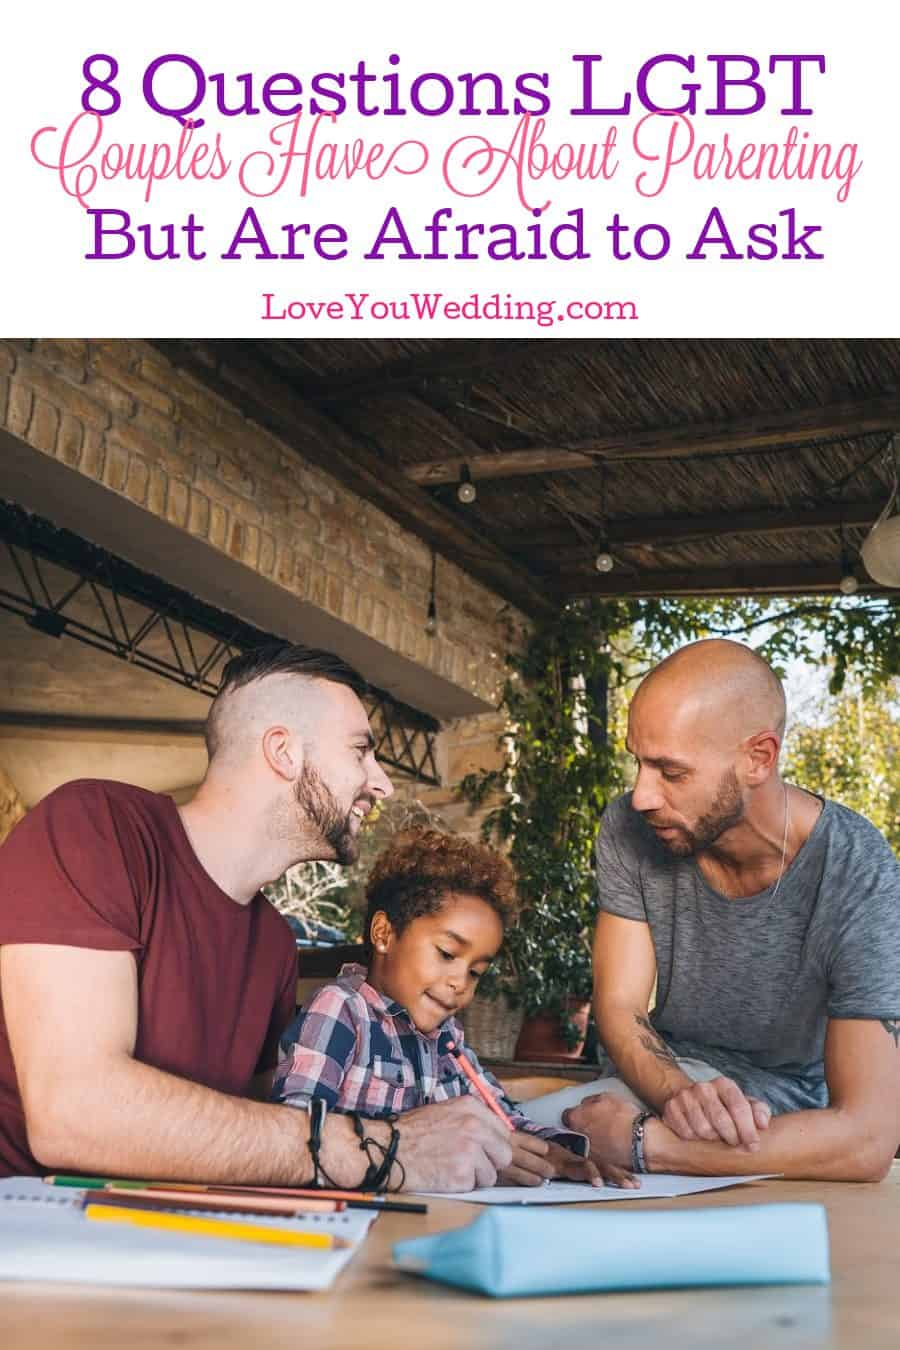 We're tackling some questions that LGBT couples have about parenting but may be too nervous or scared to ask. Take a look!